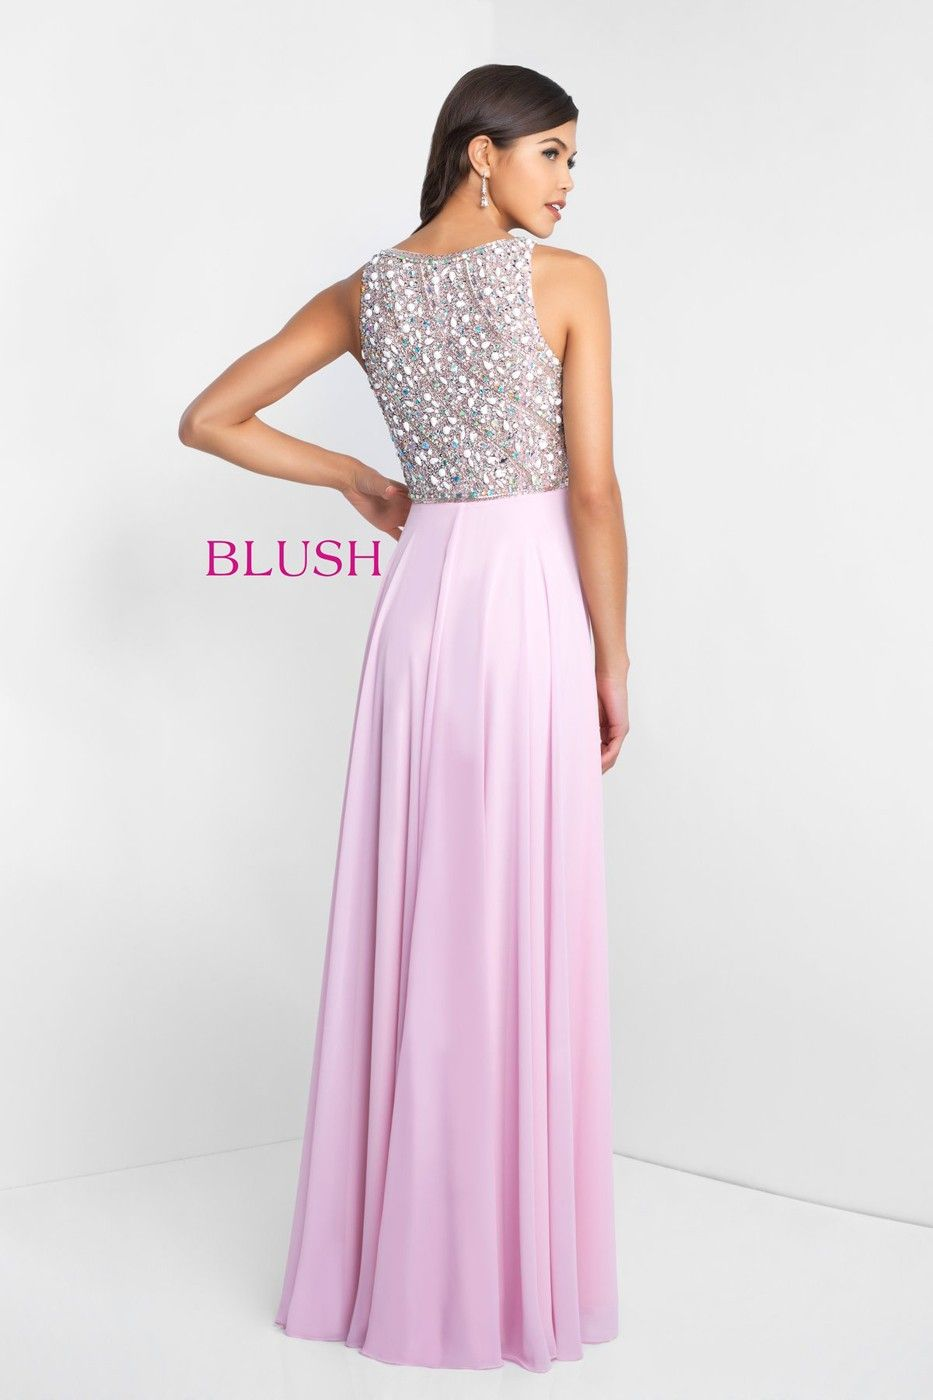 Blush C1034 Prom Dress - MadameBridal.com | Blush Couture Prom ...